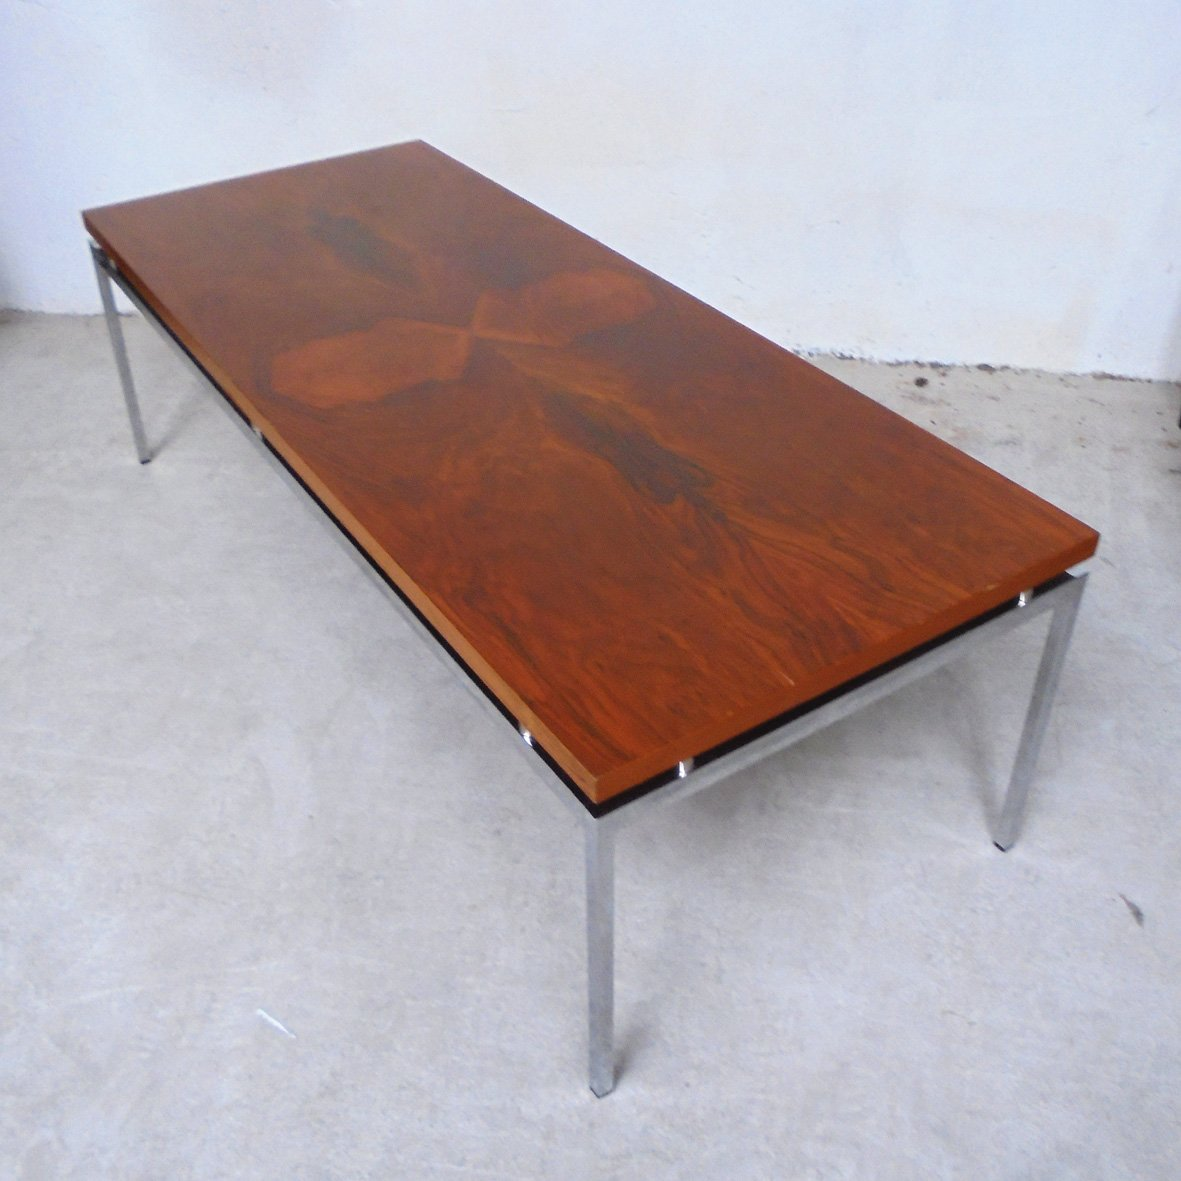 Square Steel Coffee Table Italian C 1970: French Burl Coffee Table, 1970s For Sale At Pamono